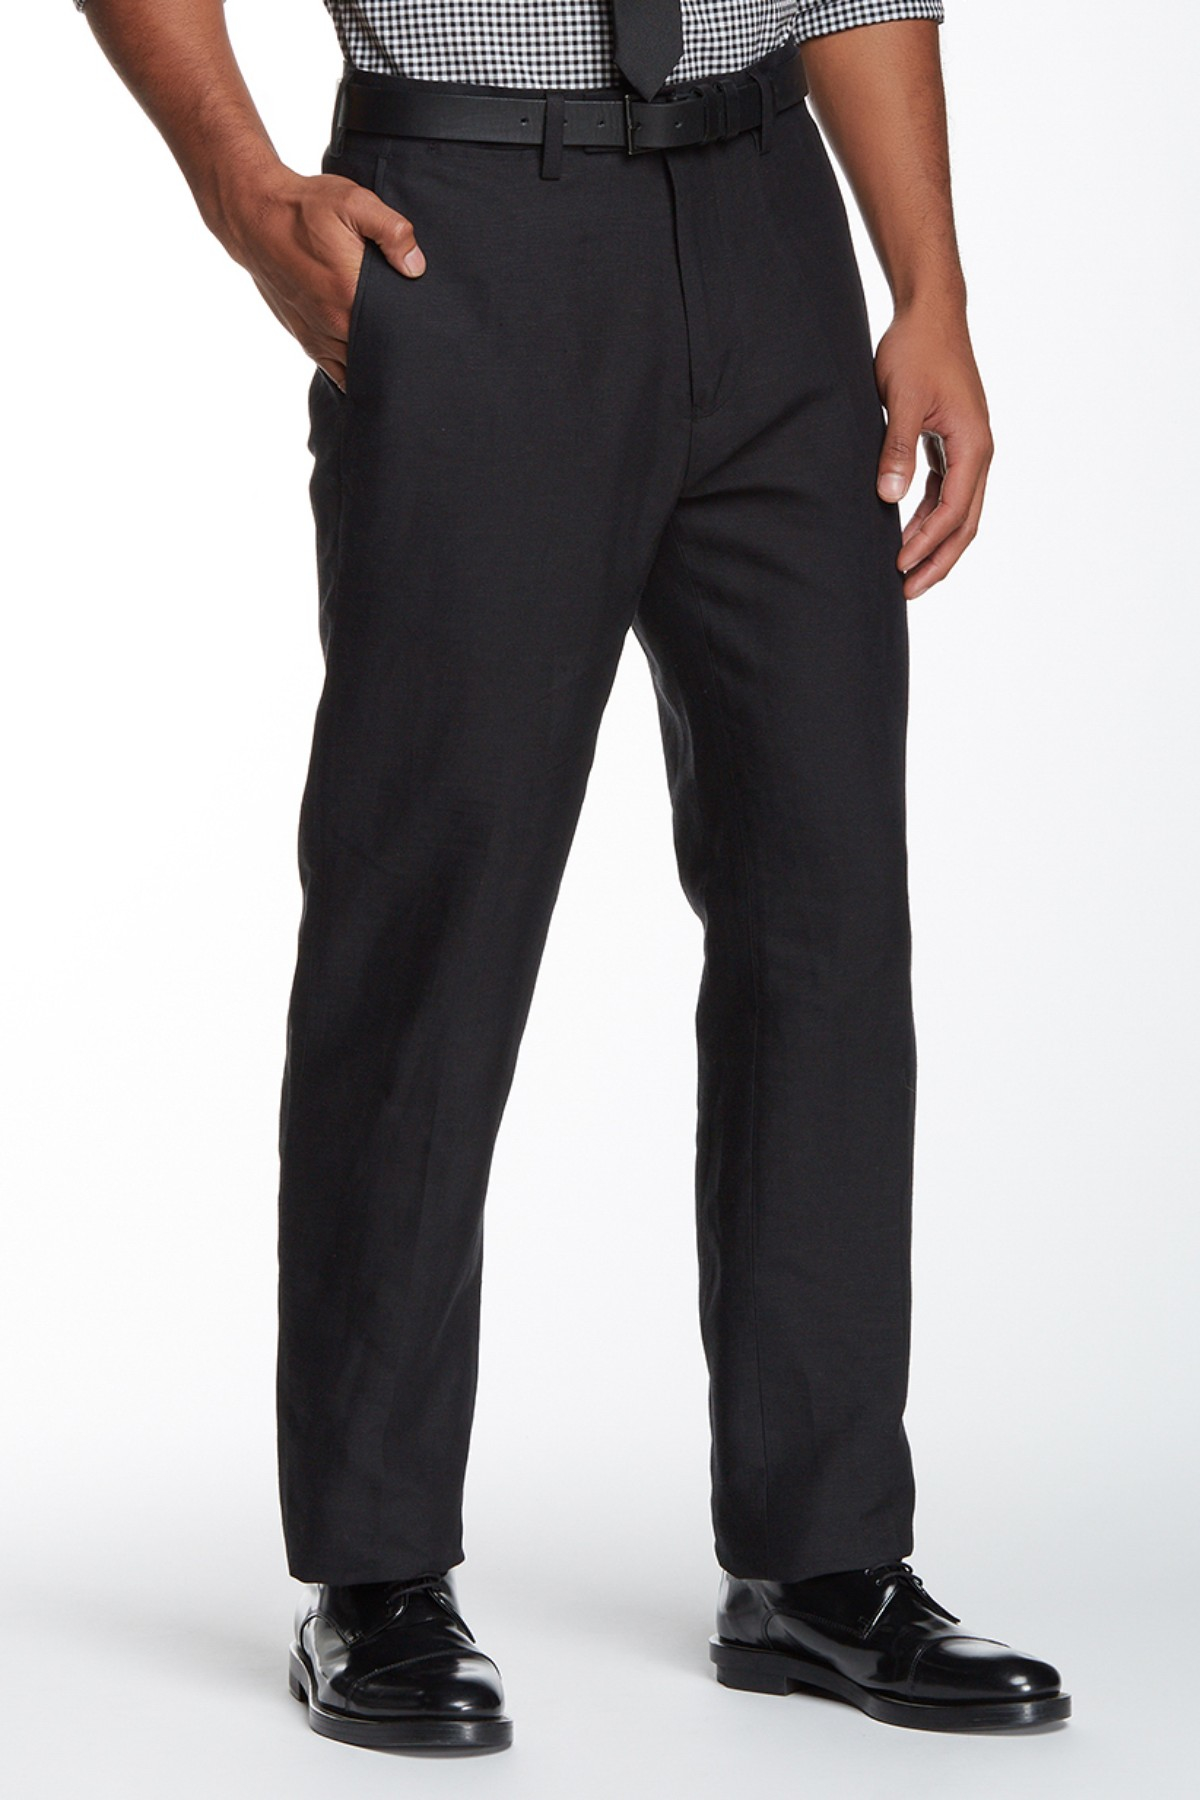 Louis Raphael Solid Straight Fit Flat Front Pant 30 34